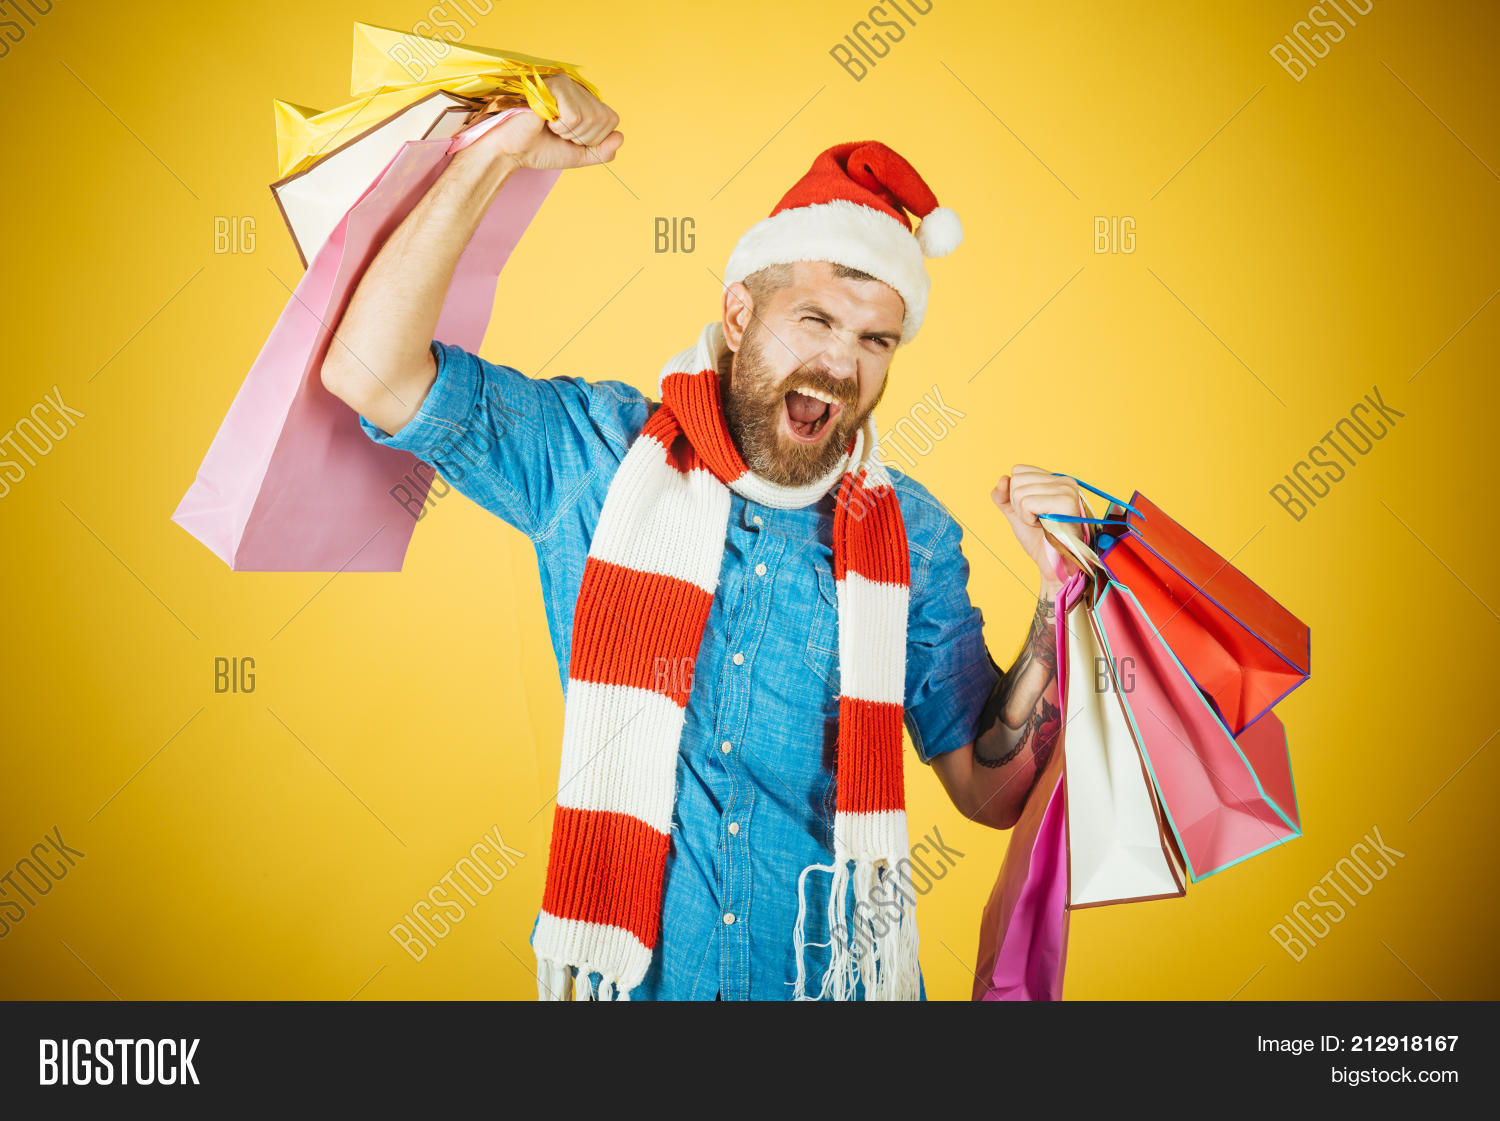 faa151b6fd566 Christmas man hold shopping bags with winner gesture. Black friday sale  concept. Hipster shopper